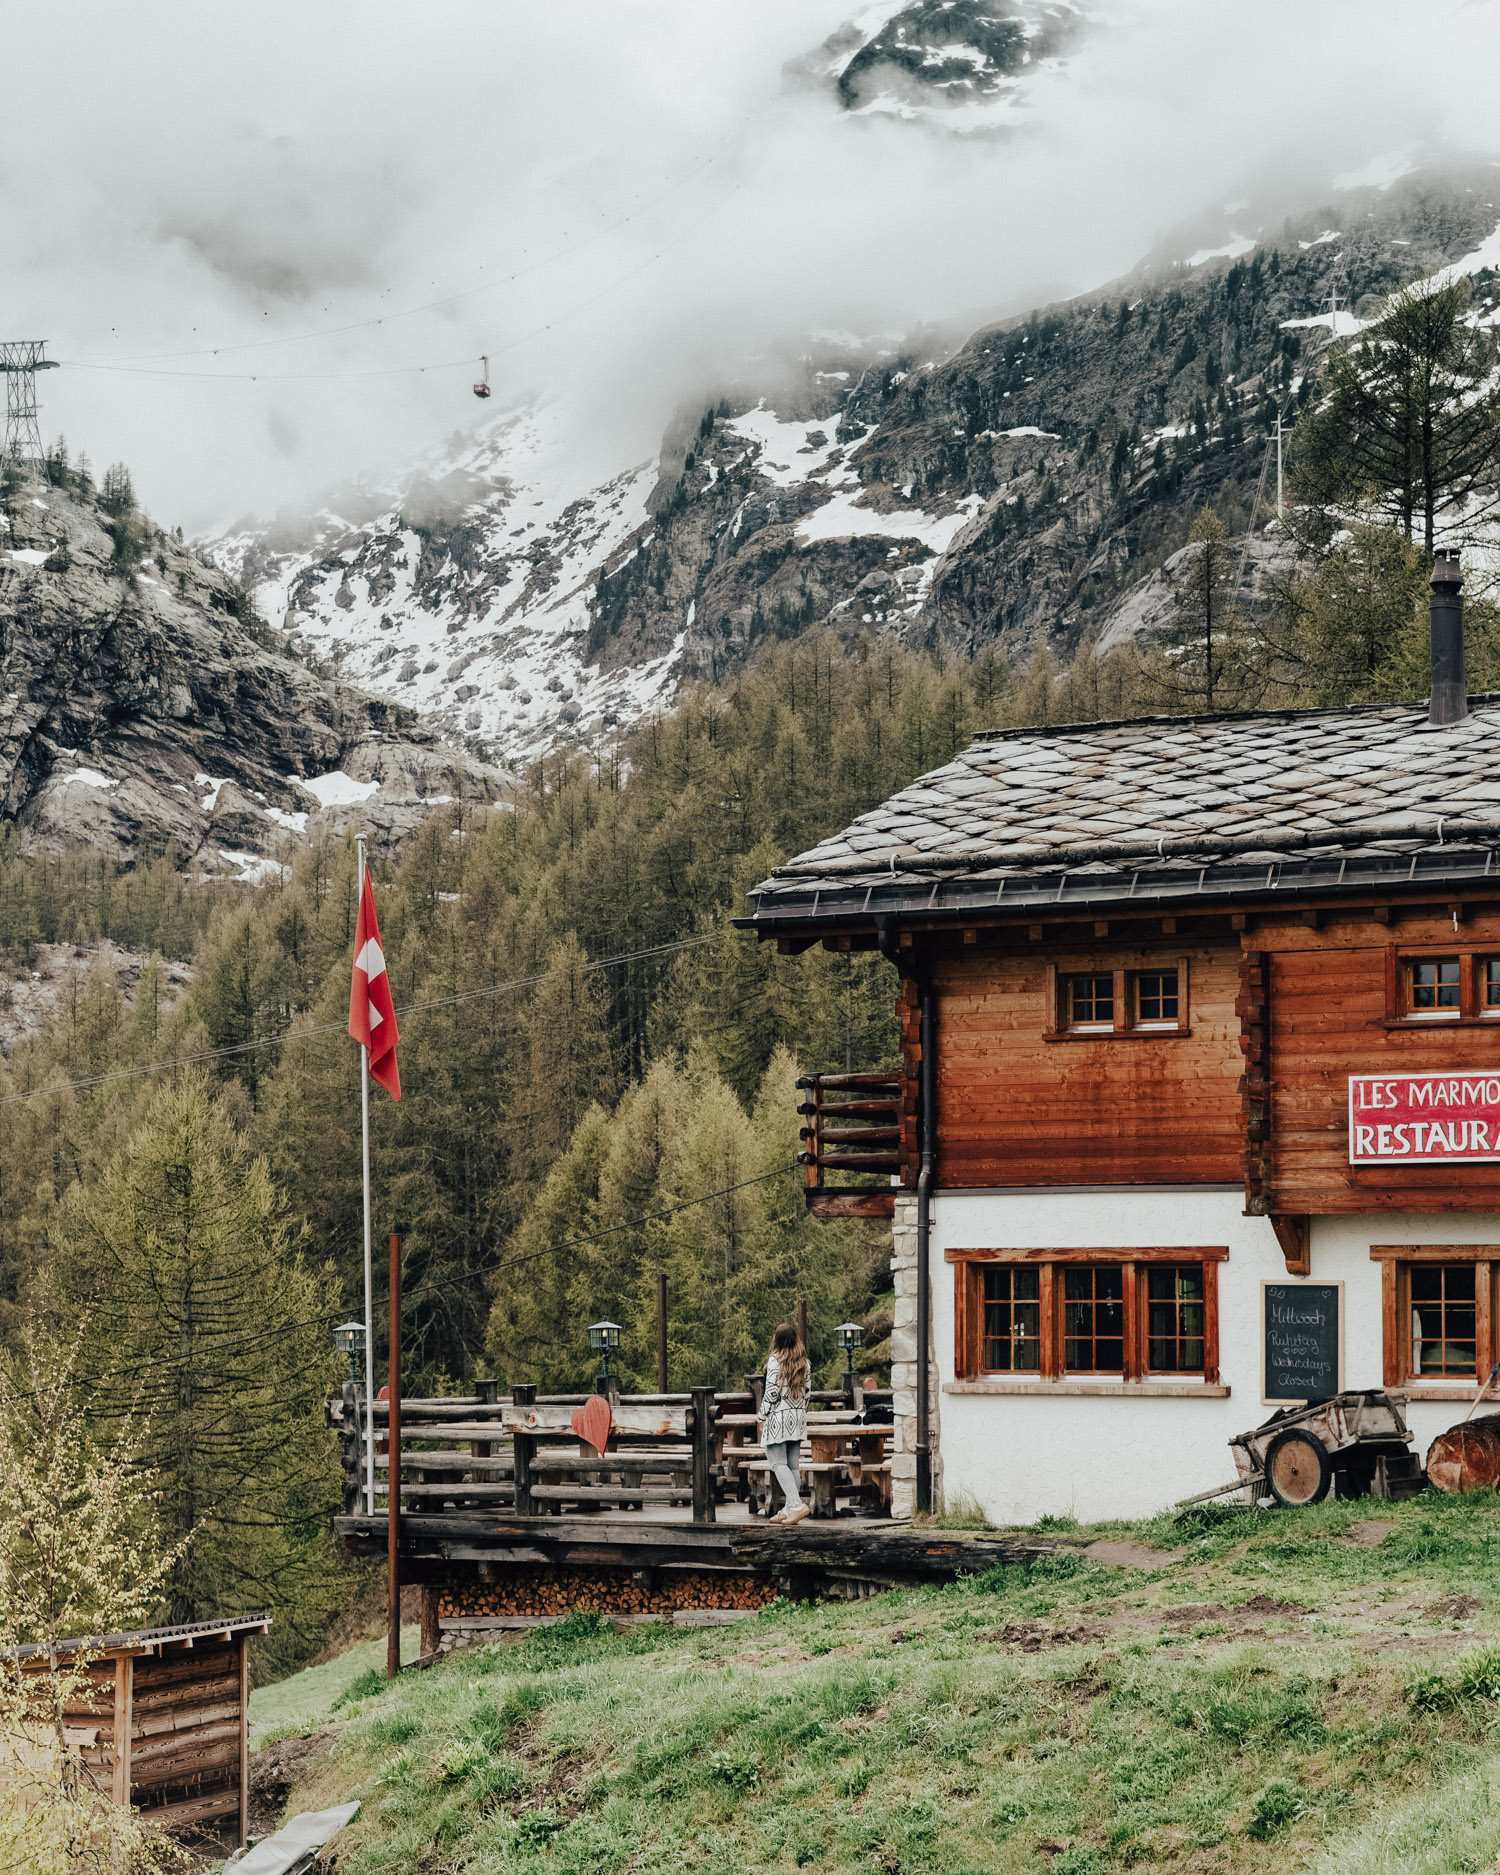 Things to do in Zermatt / Les Marmottes Restaurant